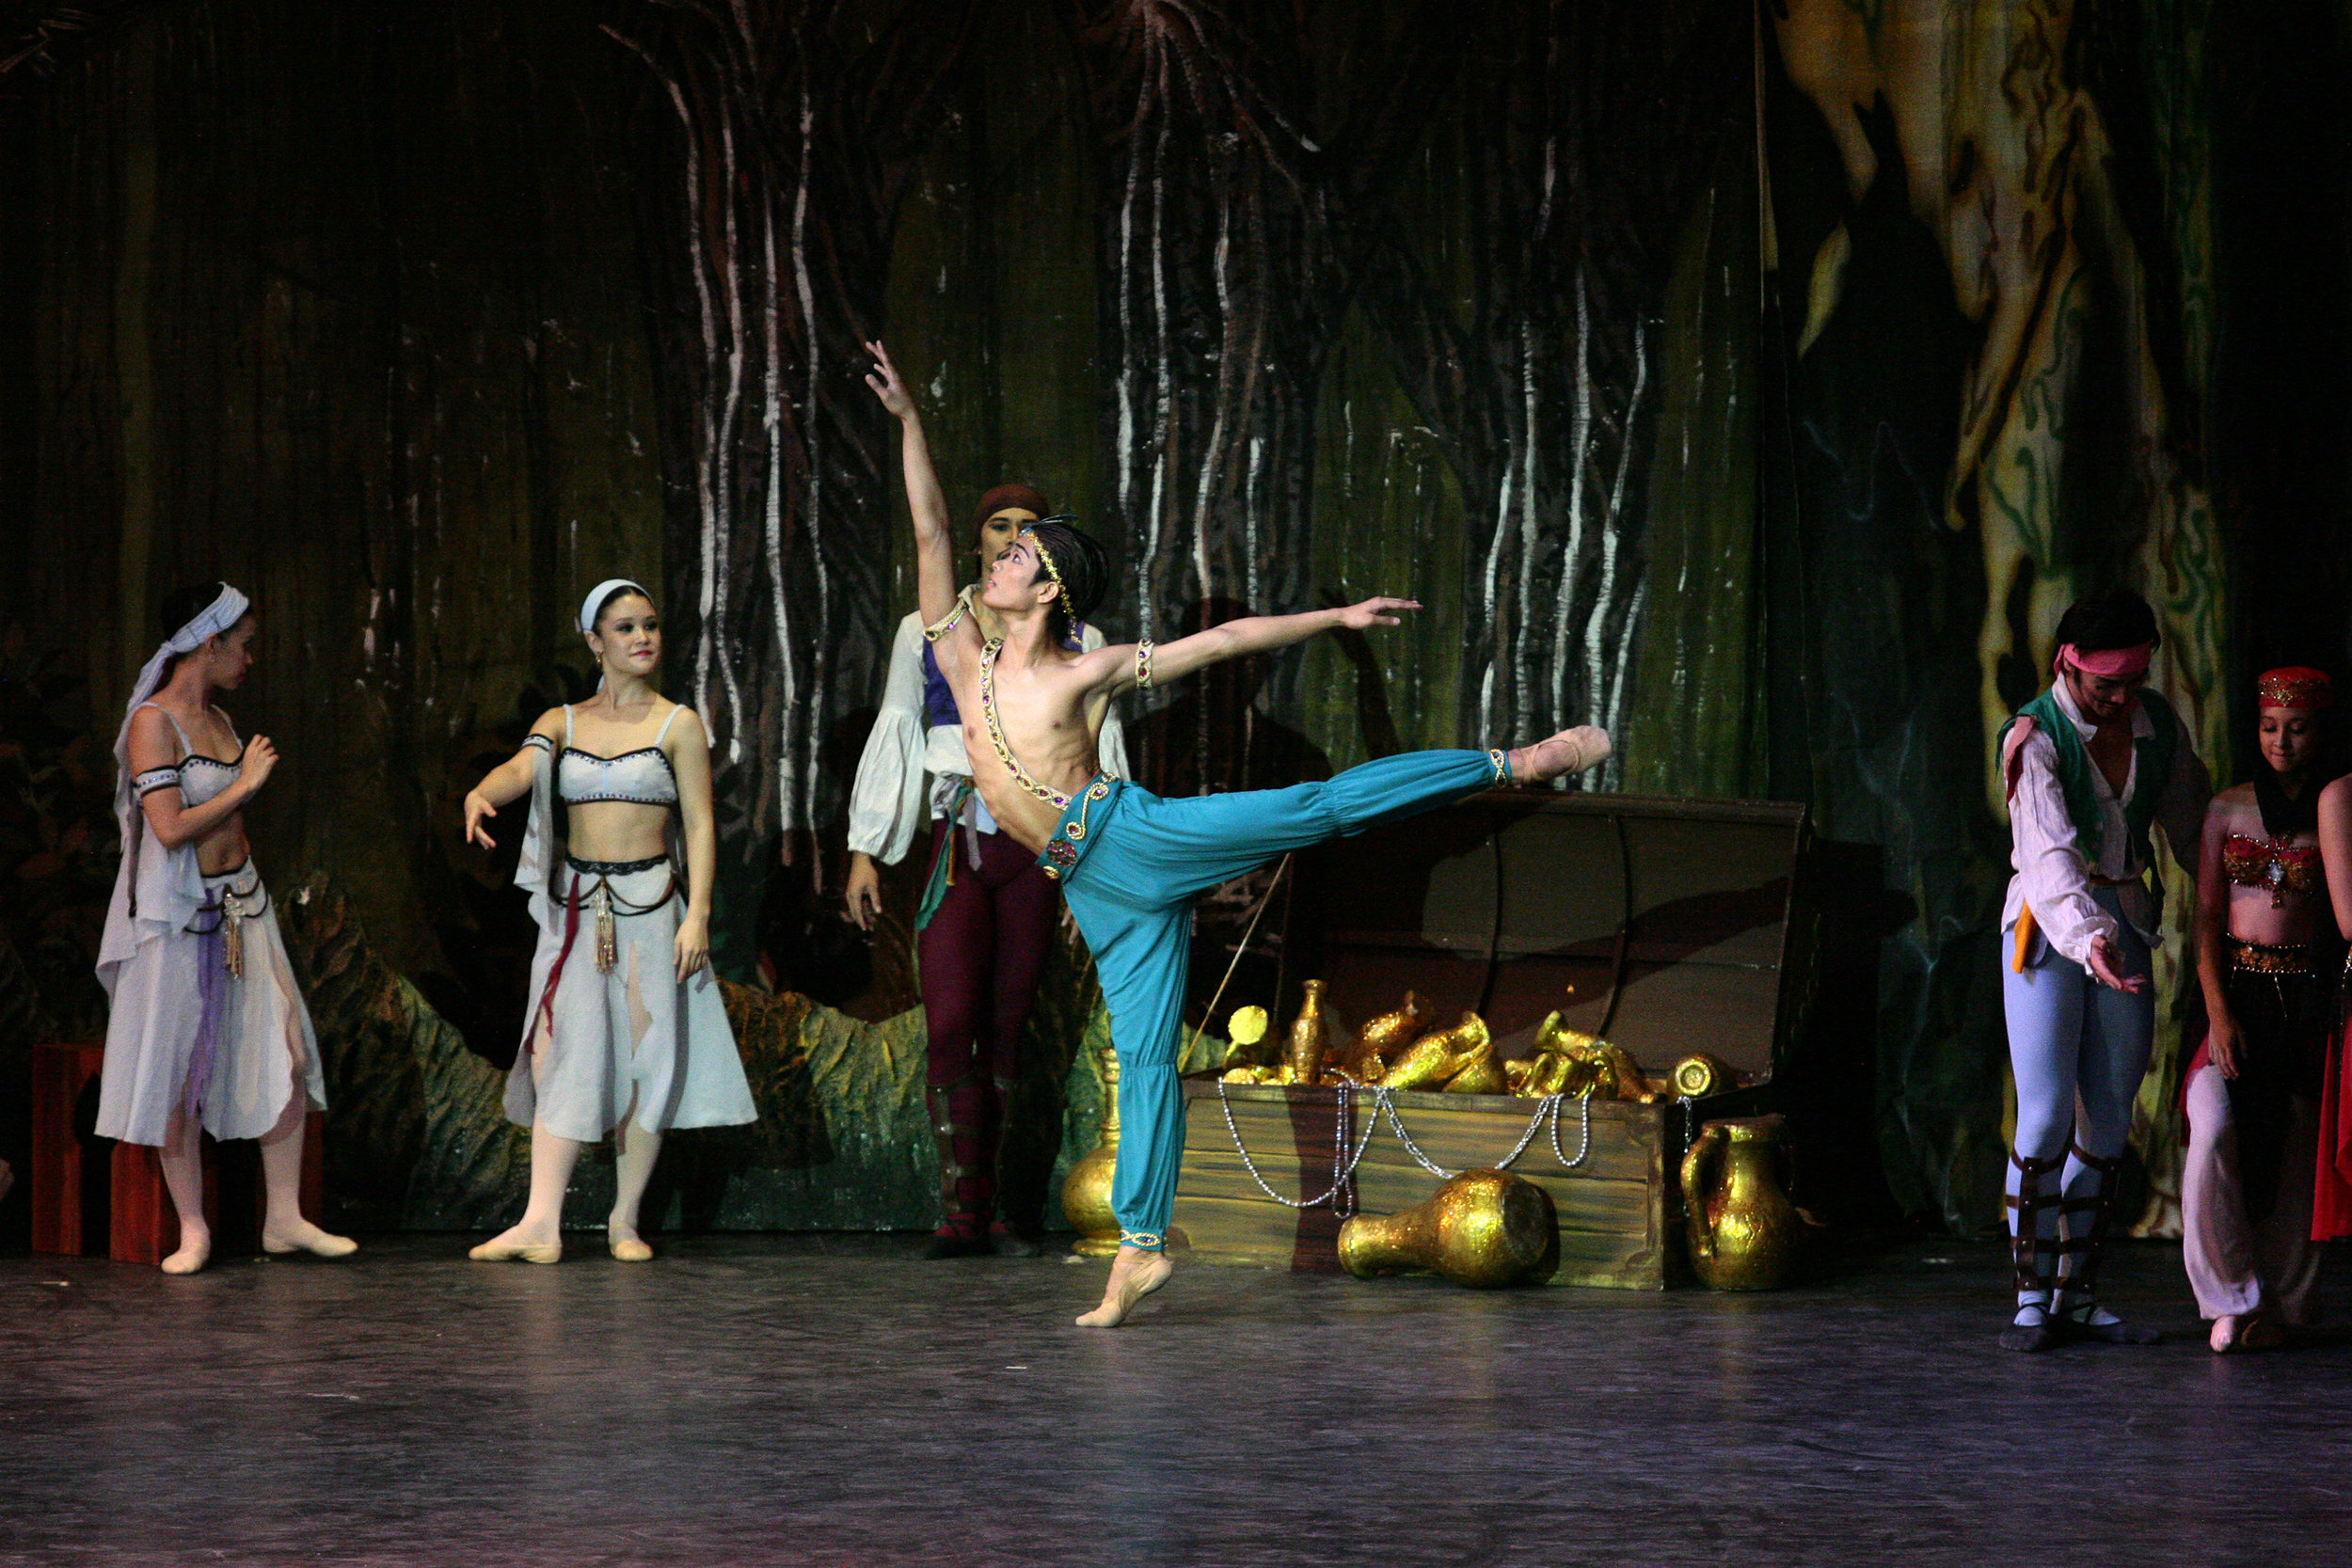 Principal dancer Elpidio Magat Jr. performed Ali in the 2010 restaging of  Le Corsaire . For the 2018 restaging, he will be performing Lankadem instead. Photo by Ocs Alvarez